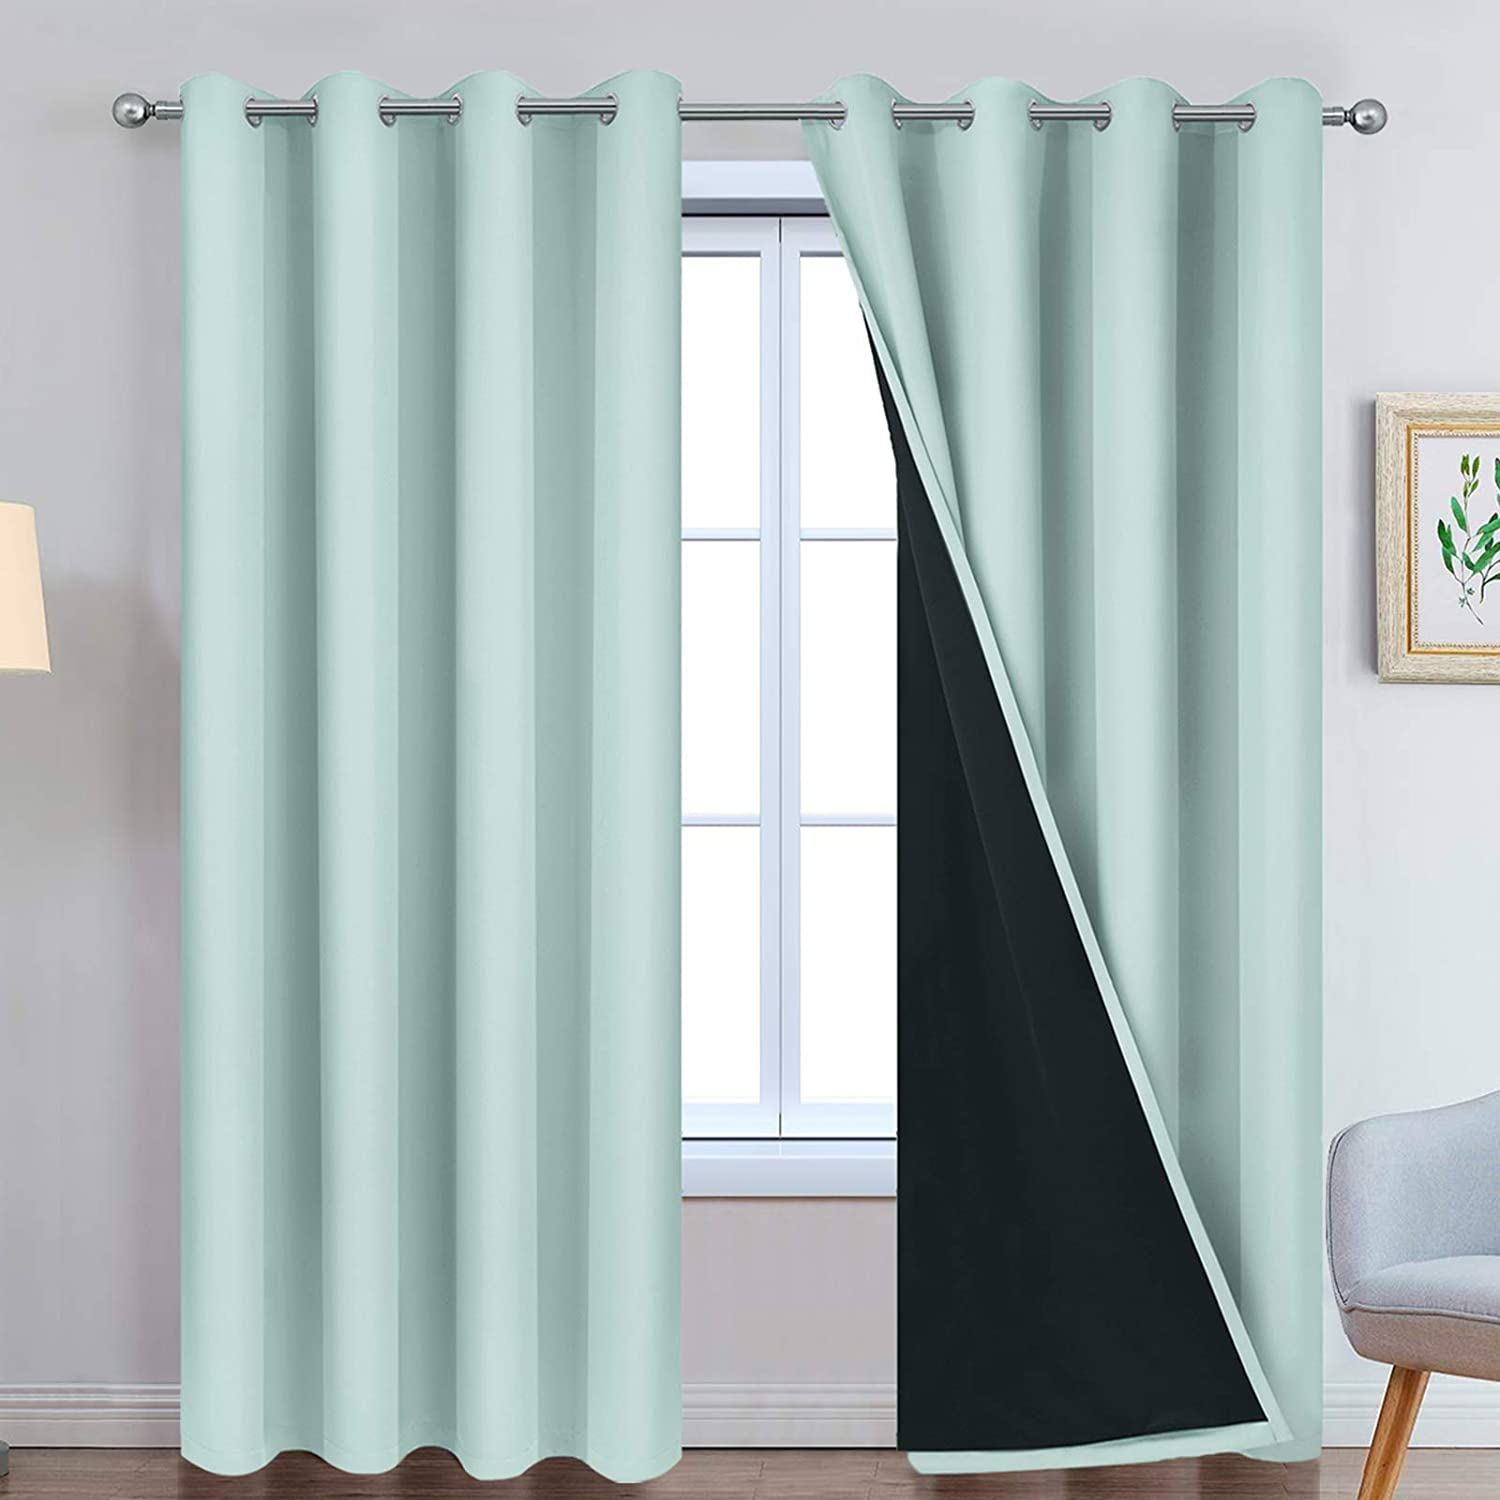 Yakamok 100% Blackout Lined Pair Curtains, Window Treatment Thermal Insulated Soundproof Drapes for Bedroom(52Wx84L, Aqua, 2 Panels) W52 x L84 Aqua